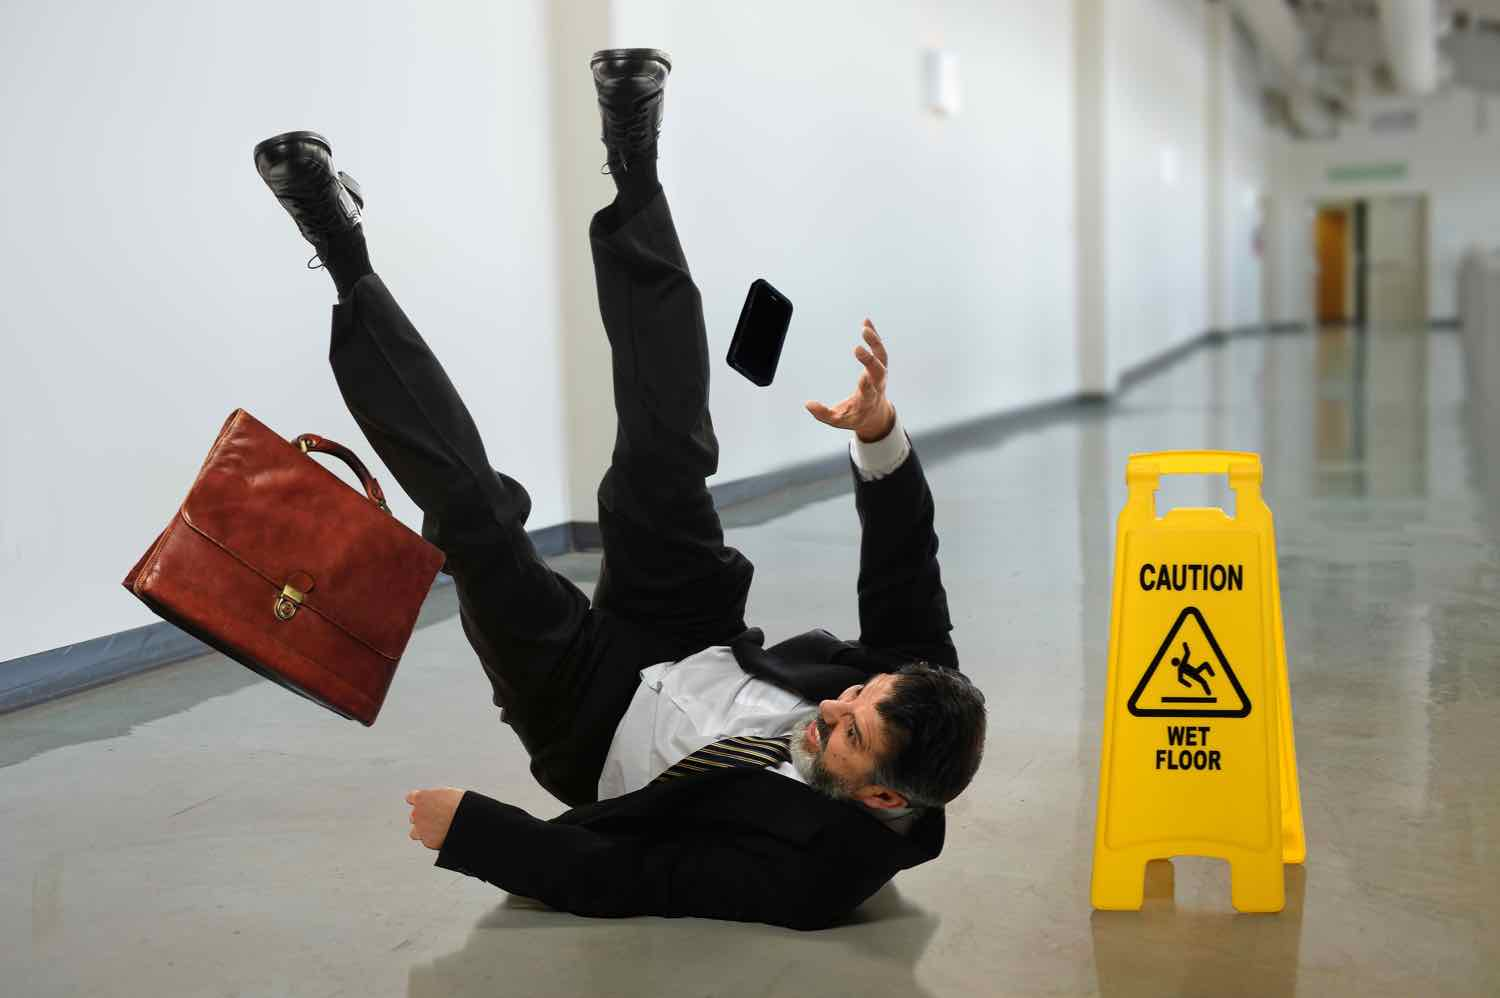 Businessman slipping and falling on a slippery/wet floor in an office building.